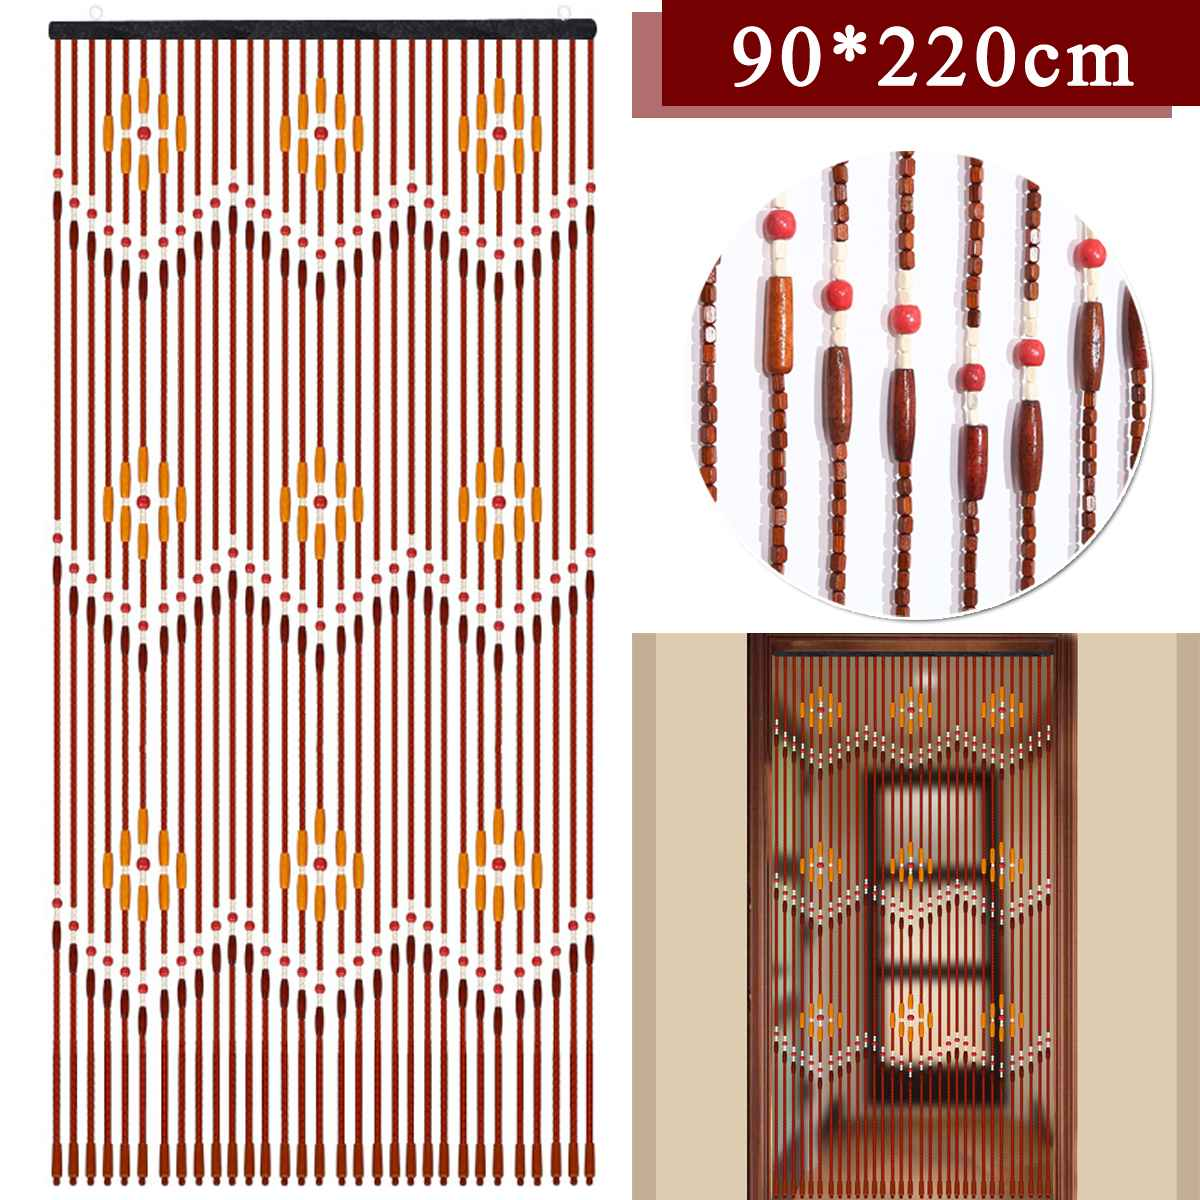 Beads Curtain Blinds Divider Fly-Screen Wooden Bedroom Living-Room Porch Line Handmade title=